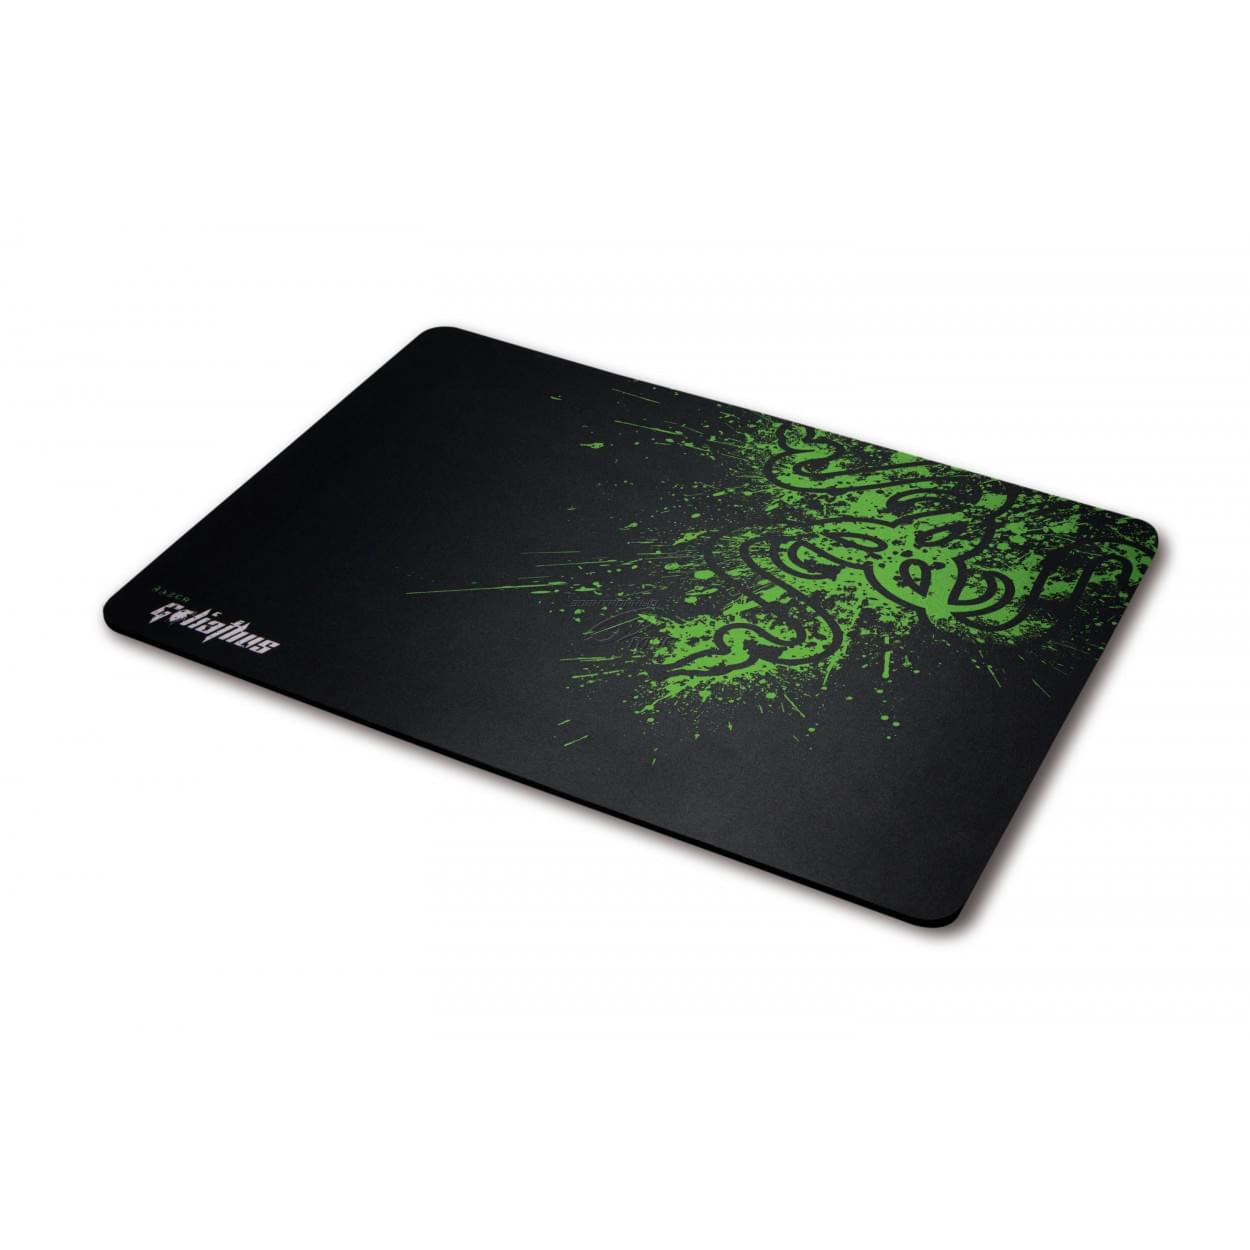 Razer Tapis Goliathus Fragged speed Edition alpha Large (RZ02-00210700-R3M1-R (NE PLUS COMMANDER FDV)) - Achat / Vente Souris PC sur Cybertek.fr - 0